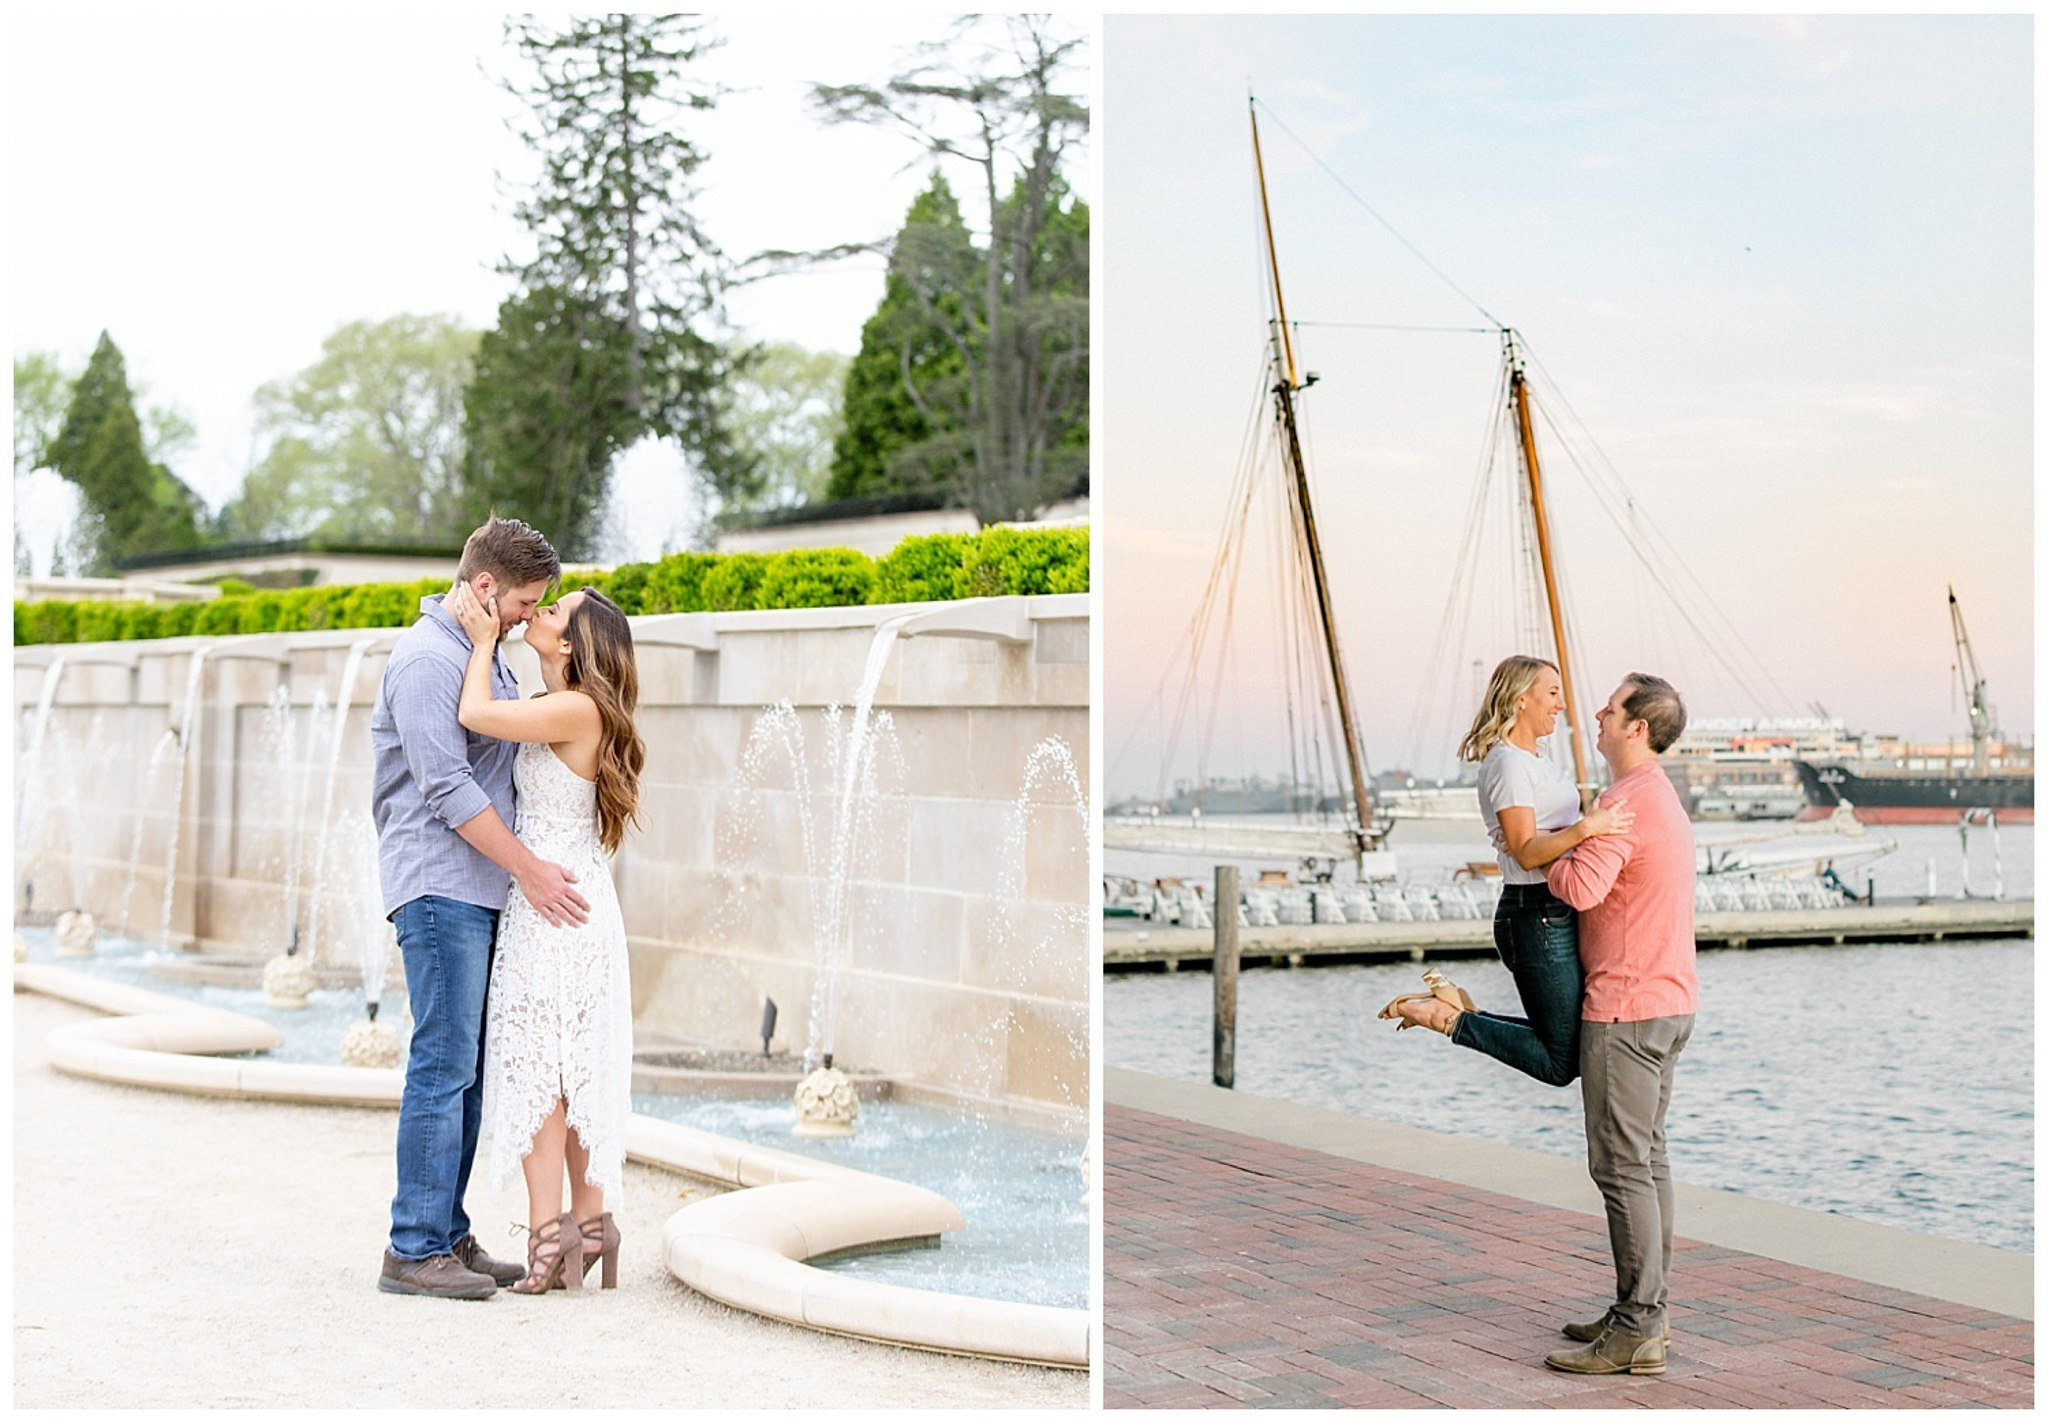 , Five Steps for Perfect Engagement Session, Fine Art Wedding Photographer Baltimore MD, Fine Art Wedding Photographer Baltimore MD